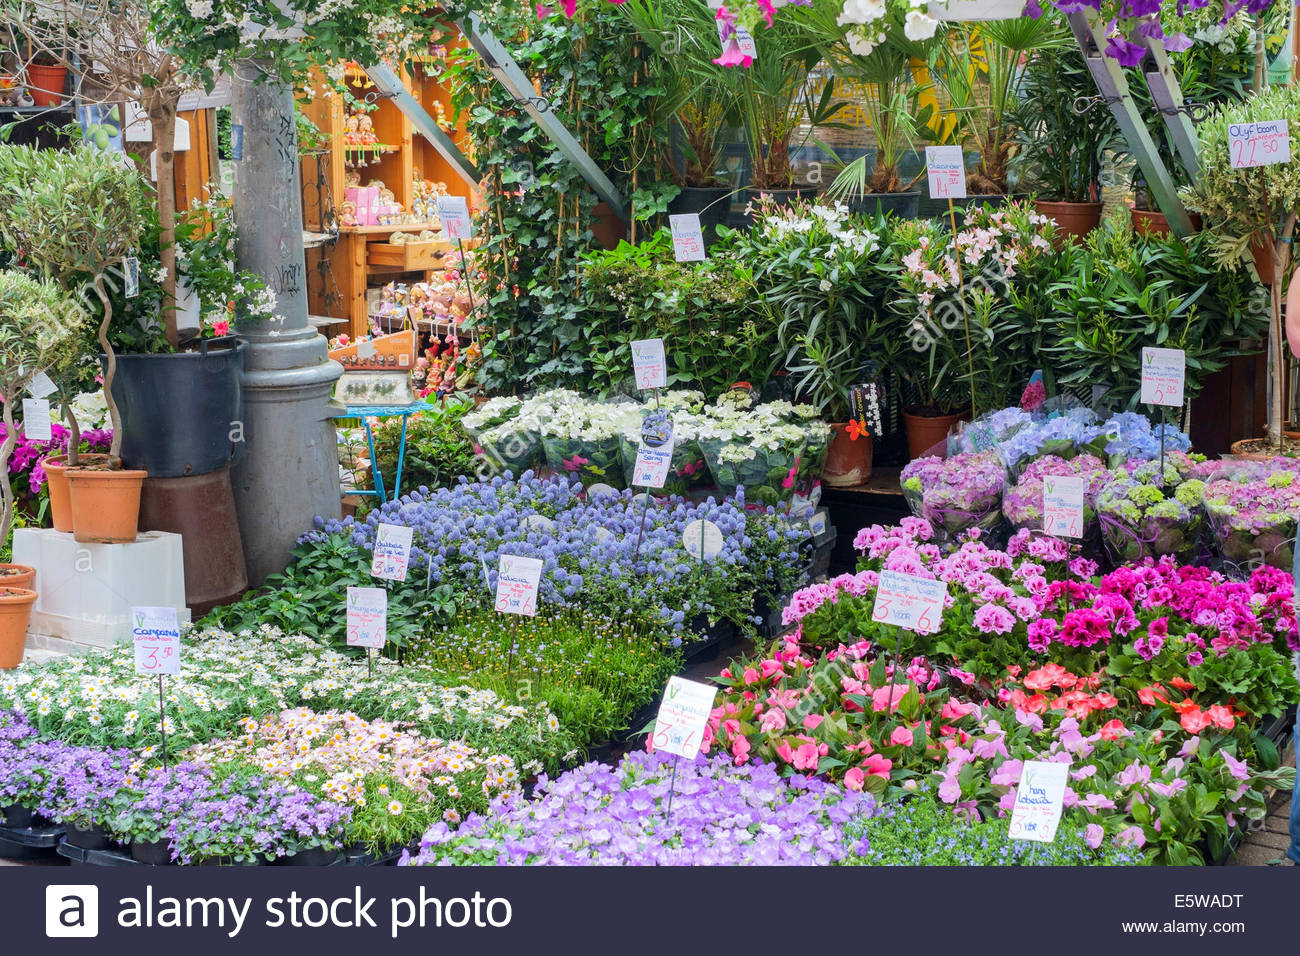 Flower and plants for sale in the Bloemenmarkt floating flower market, Amsterdam, North Holland, Netherlands - Stock Image